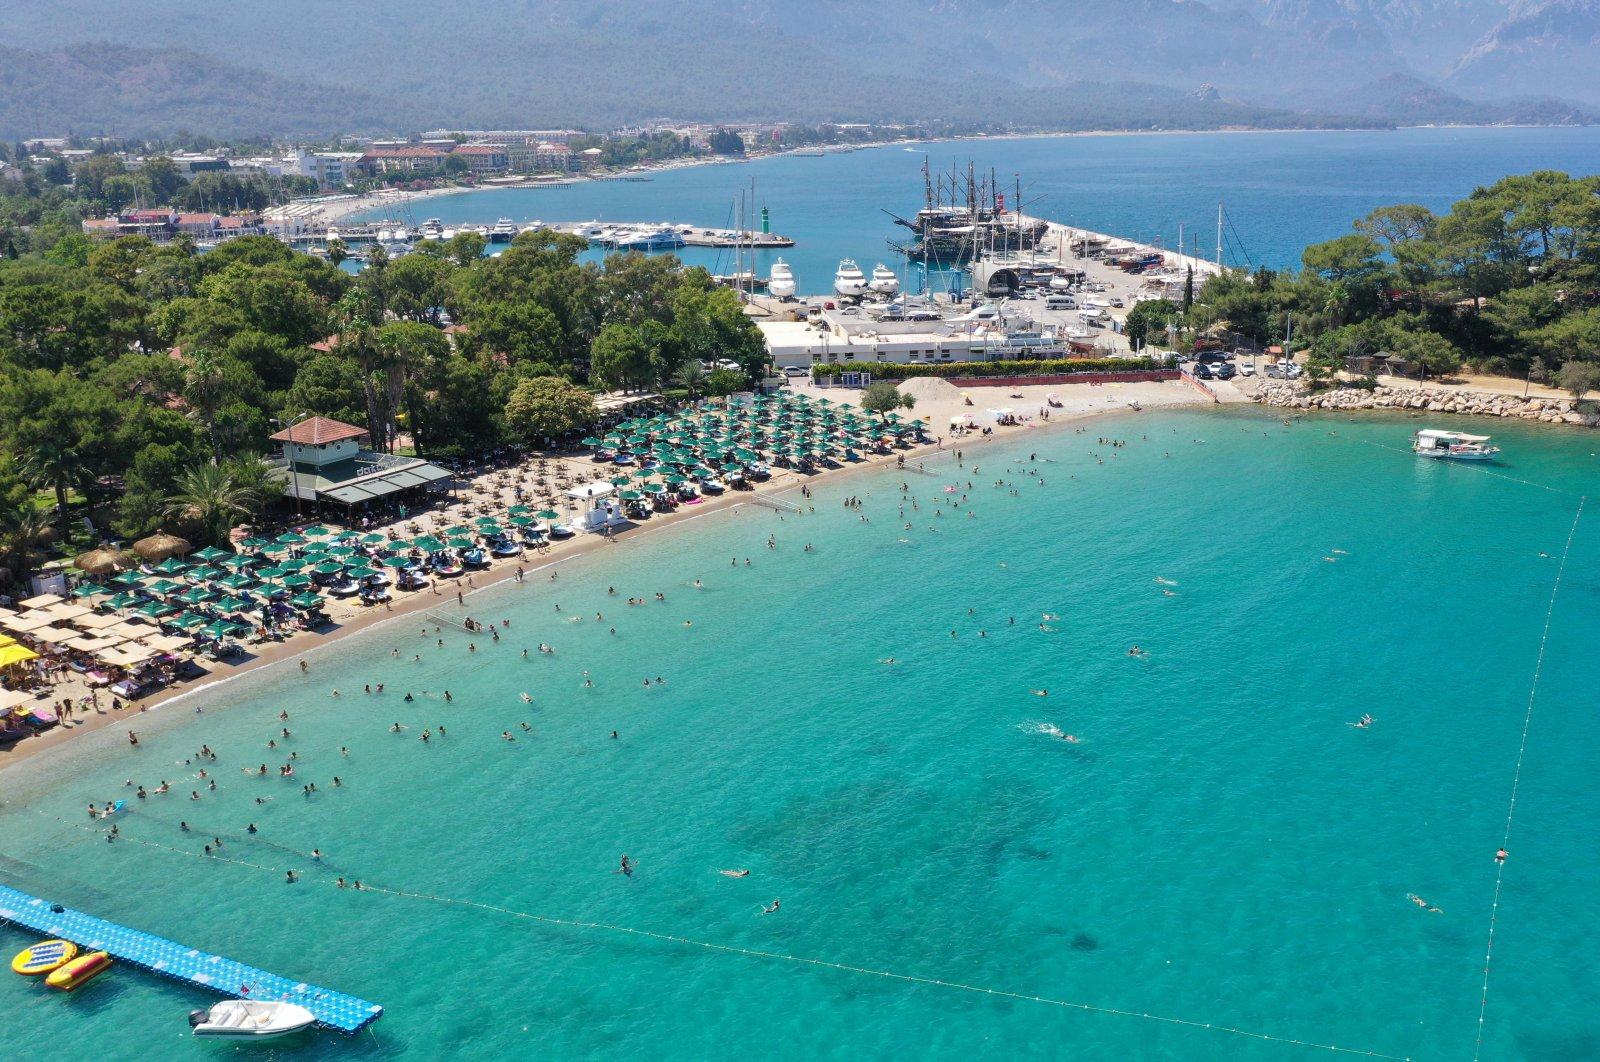 A tourism facility in the Kemer district of southern Turkey's Antalya province, July 30, 2020. (DHA Photo)